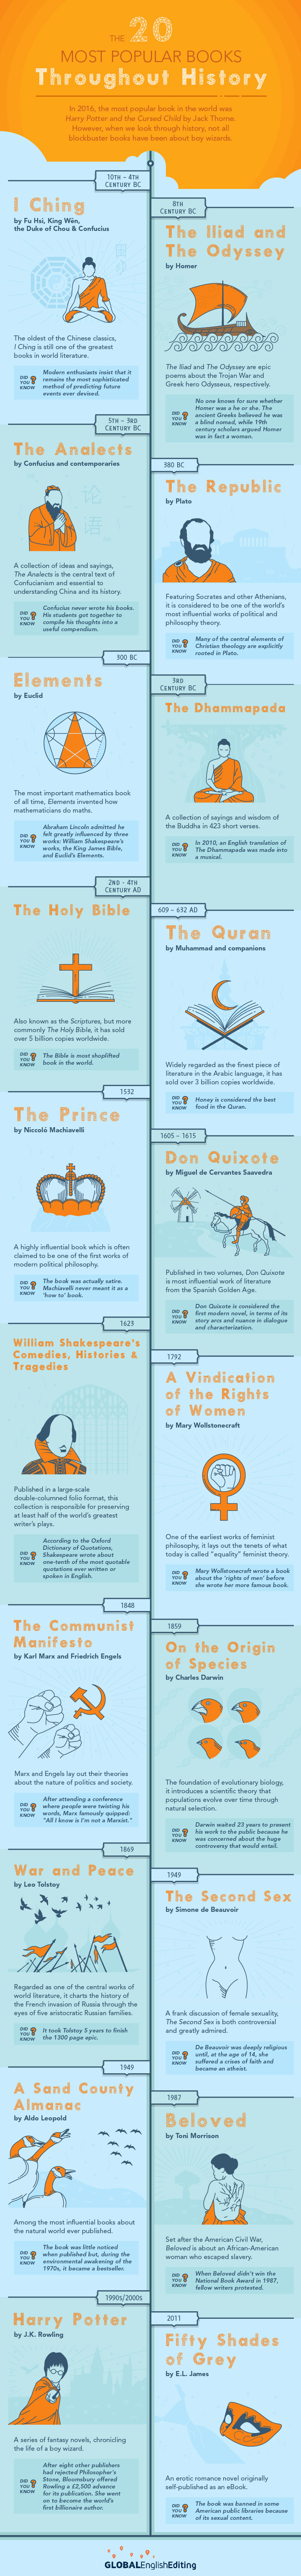 Books Through the Ages: The Bestselling Popularity Index - Infographic